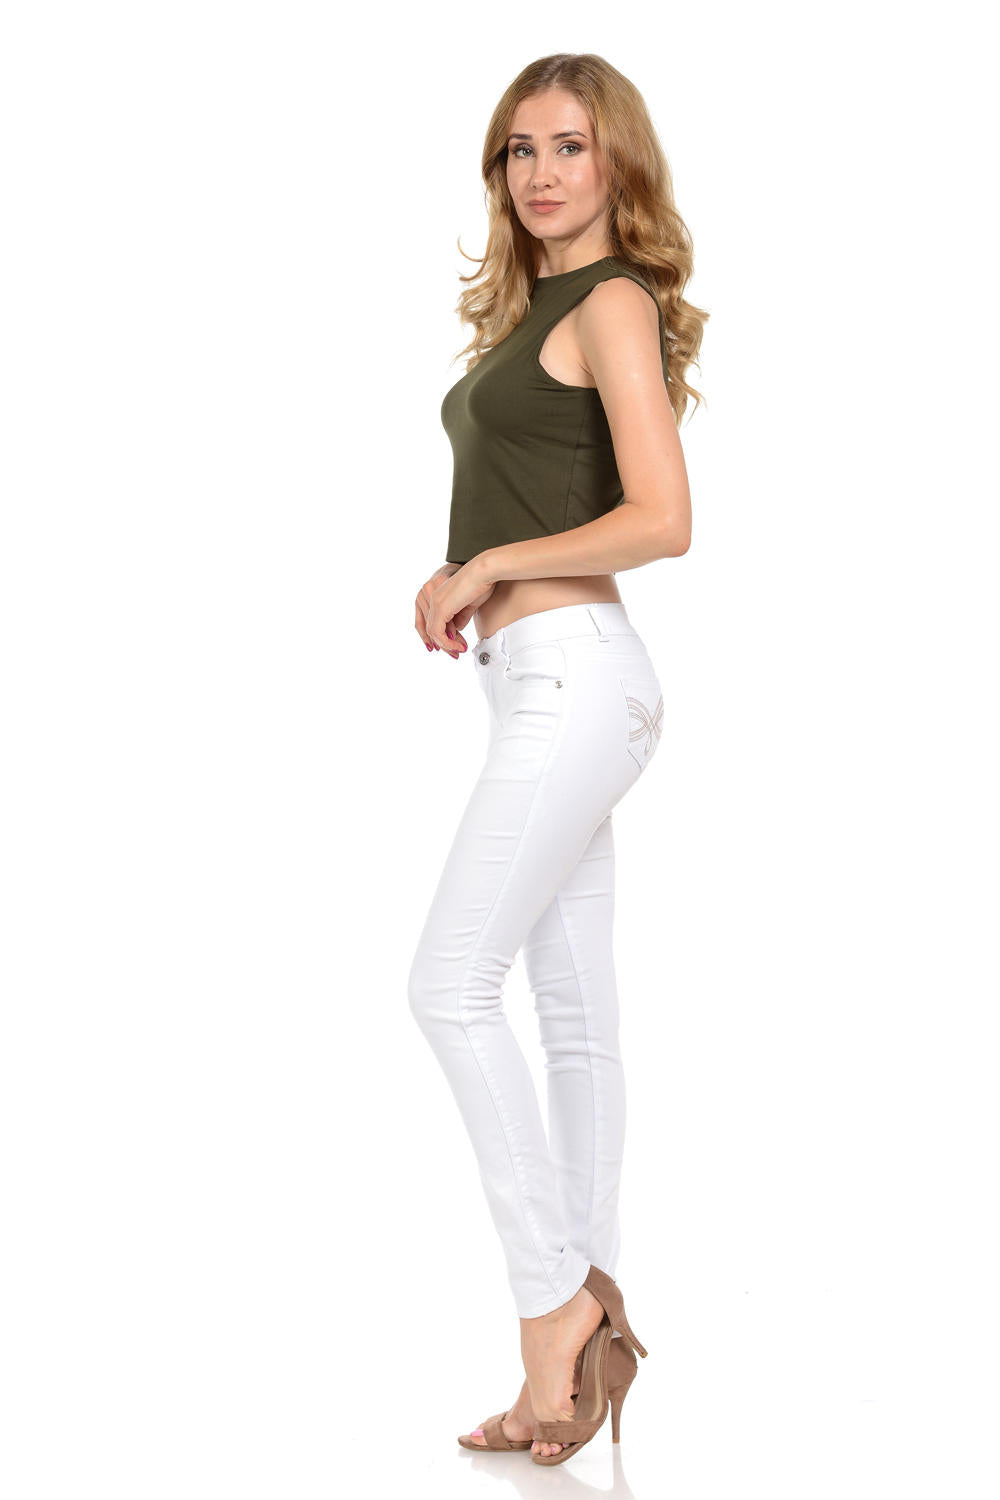 Pasion Women's Jeans - Push Up -  WG0083